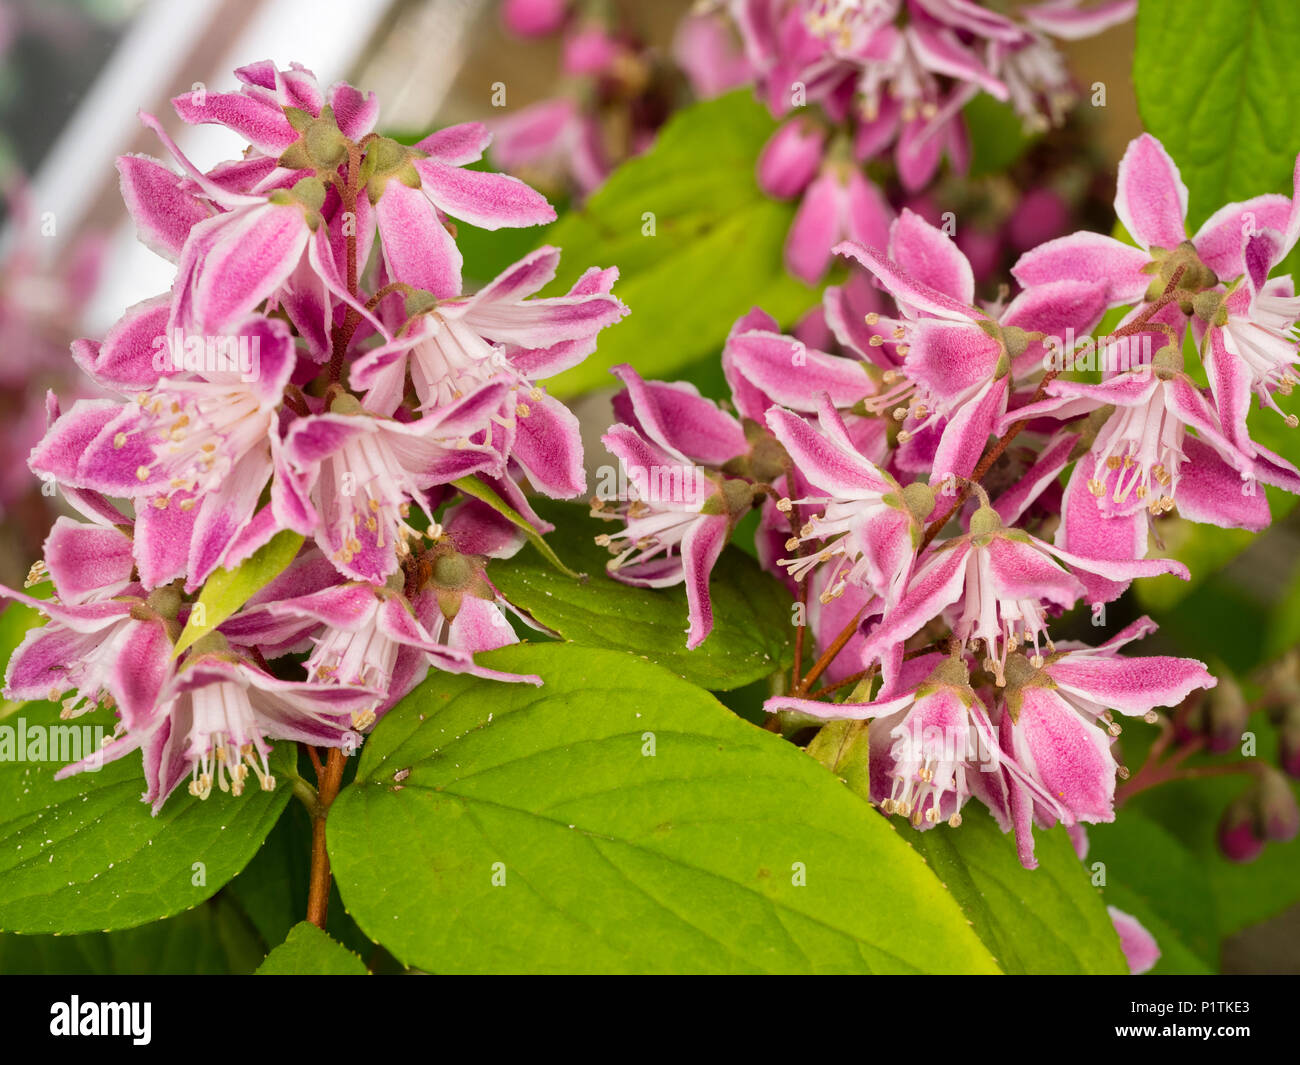 1 X DEUTZIA HYBRIDA /'STRAWBERRY FIELDS/' DECIDUOUS SHRUB HARDY PLANT IN POT